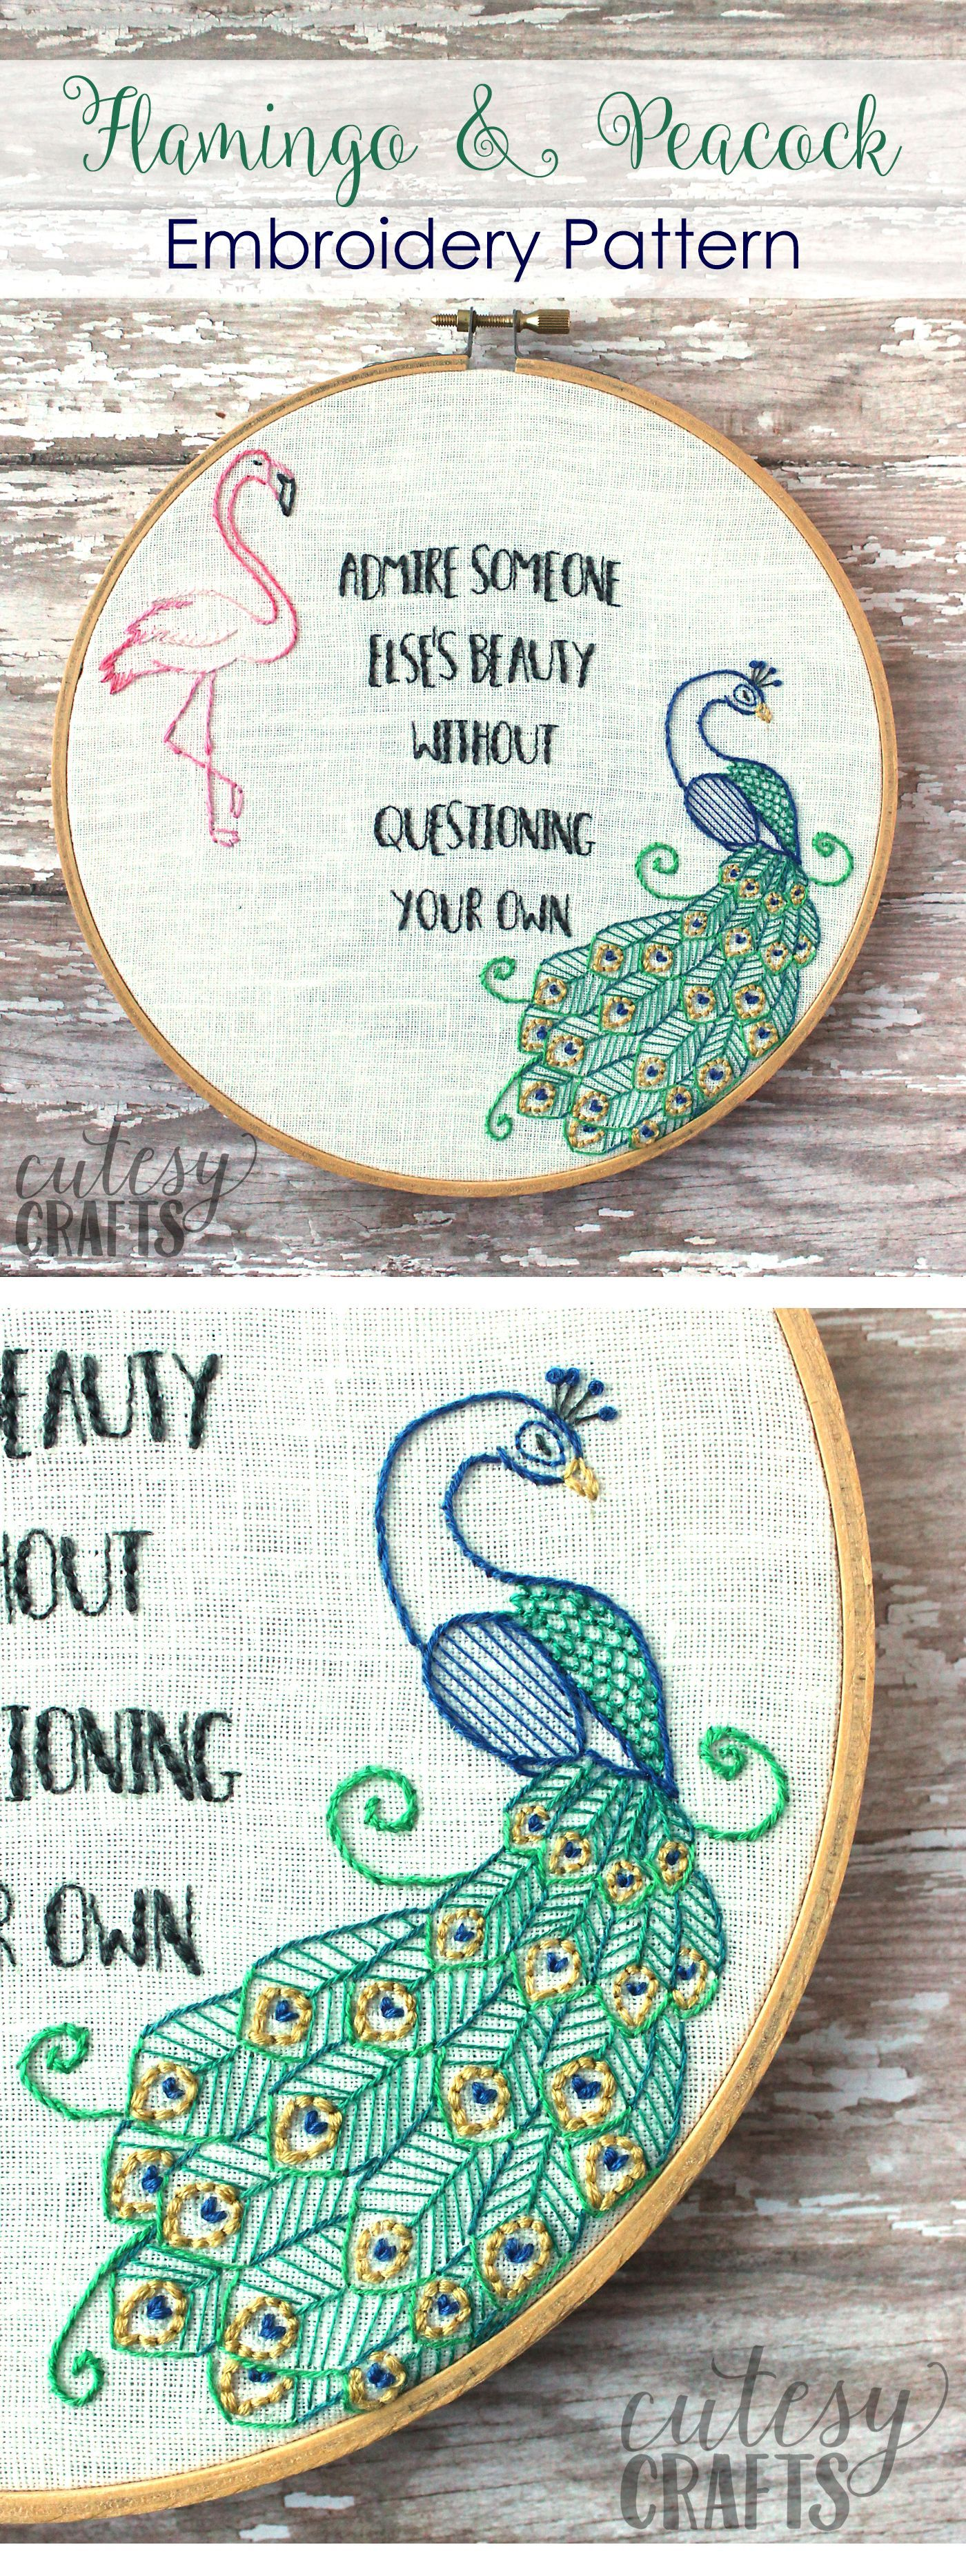 Flamingo and peacock free embroidery pattern quote embroidery